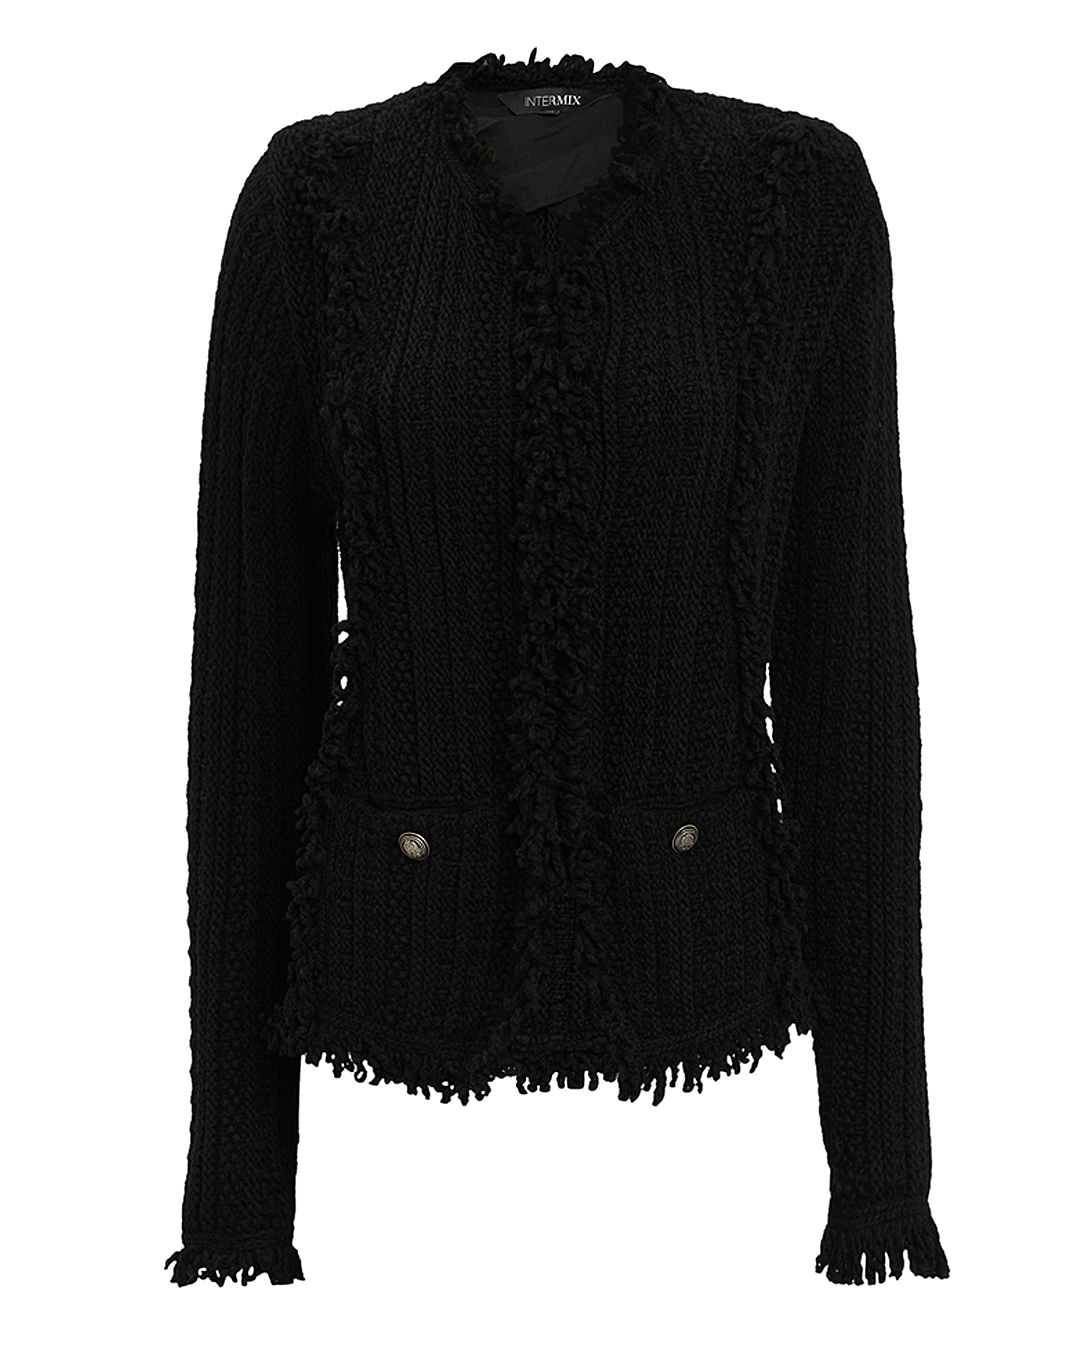 EXCLUSIVE FOR INTERMIX Intermix Ikaterina Black Knit Jacket Black